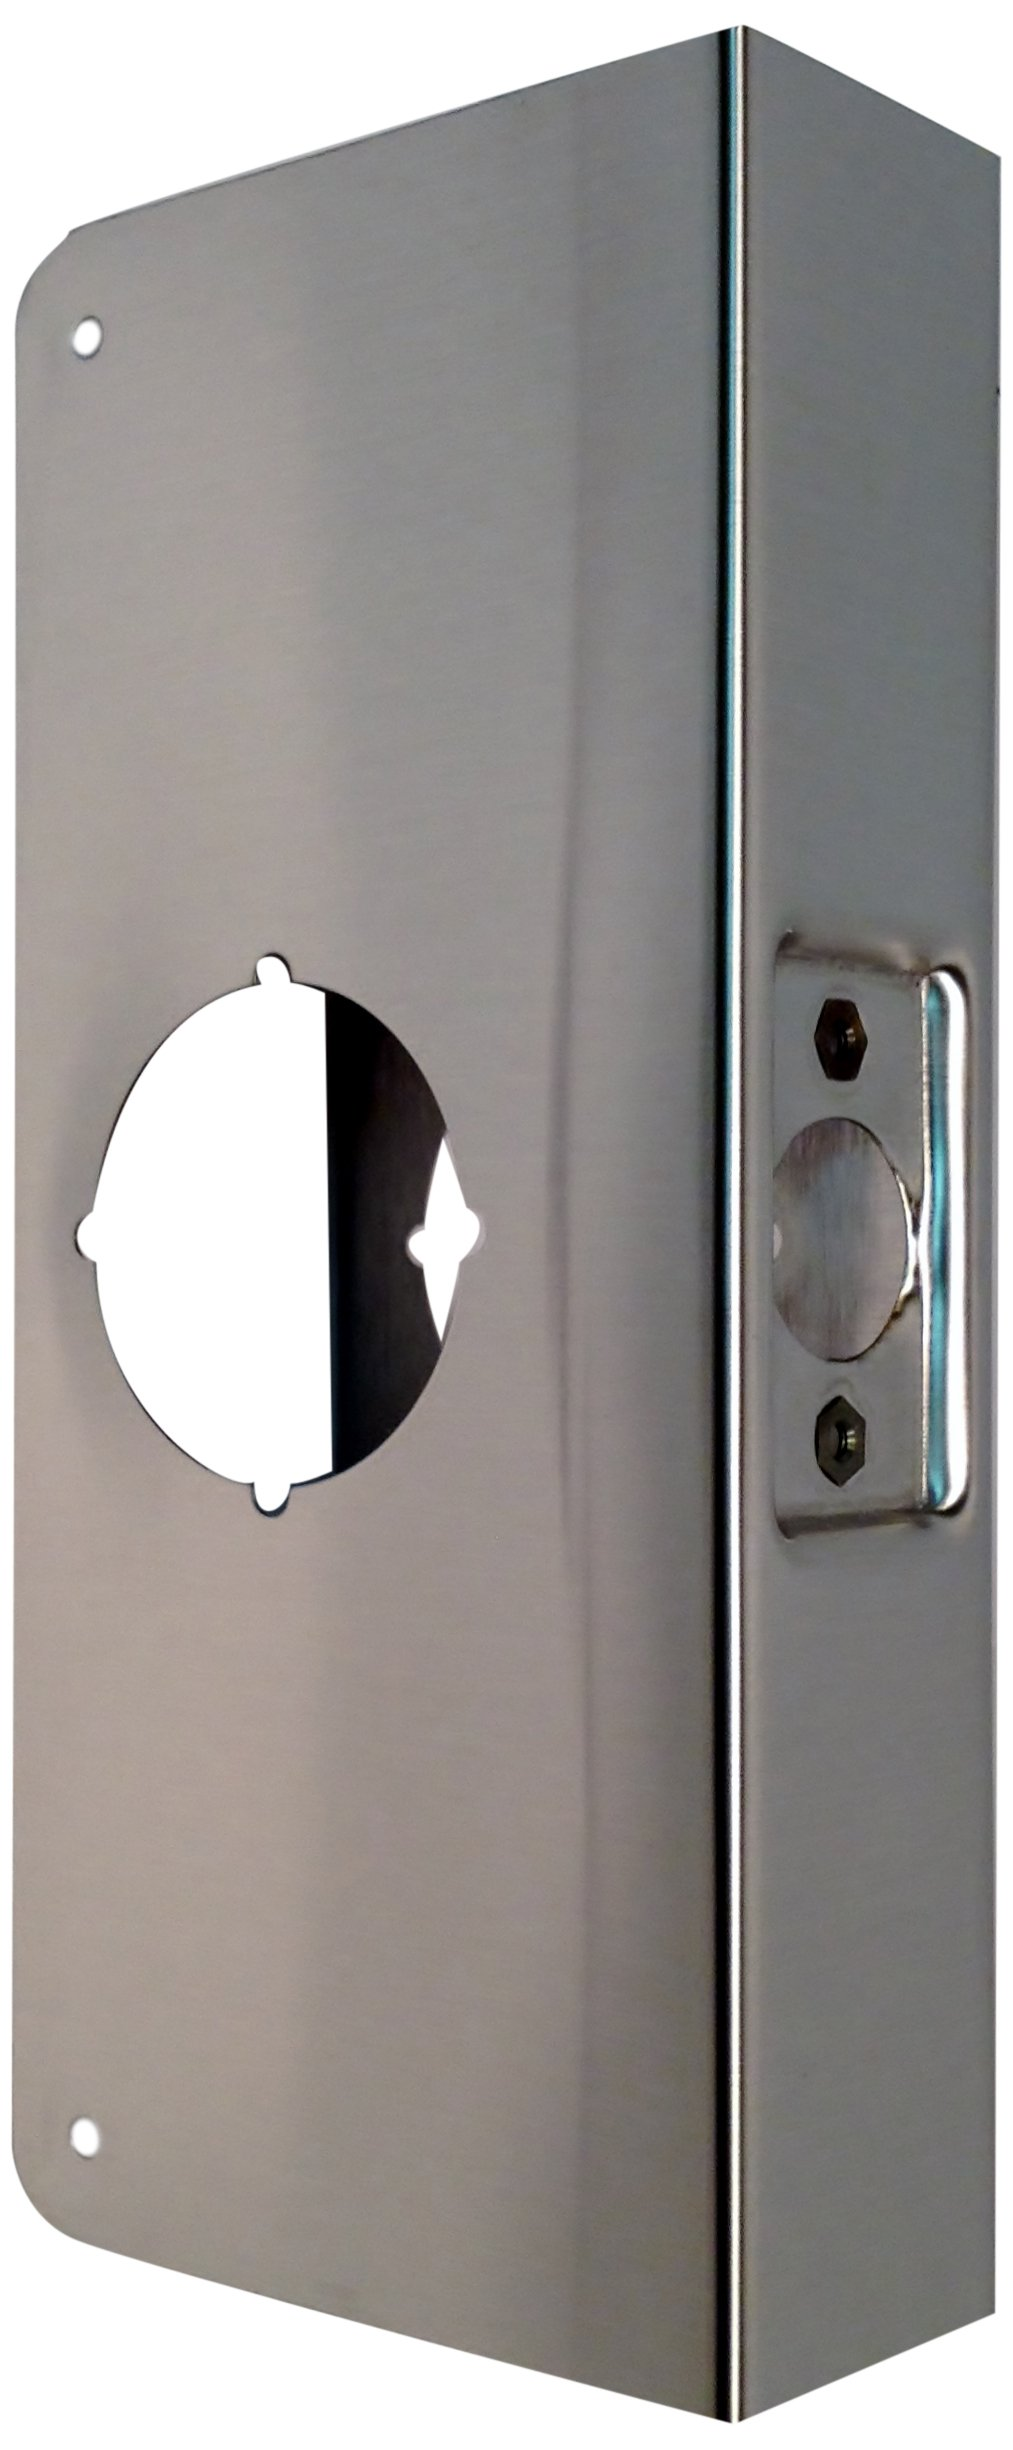 Don-Jo 2-CW 22 Gauge Stainless Steel Wrap-Around Plate, Satin Stainless Steel Finish, 4'' Width x 9'' Height, For Cylindrical Door Locks (Pack of 10) by Don-Jo (Image #1)